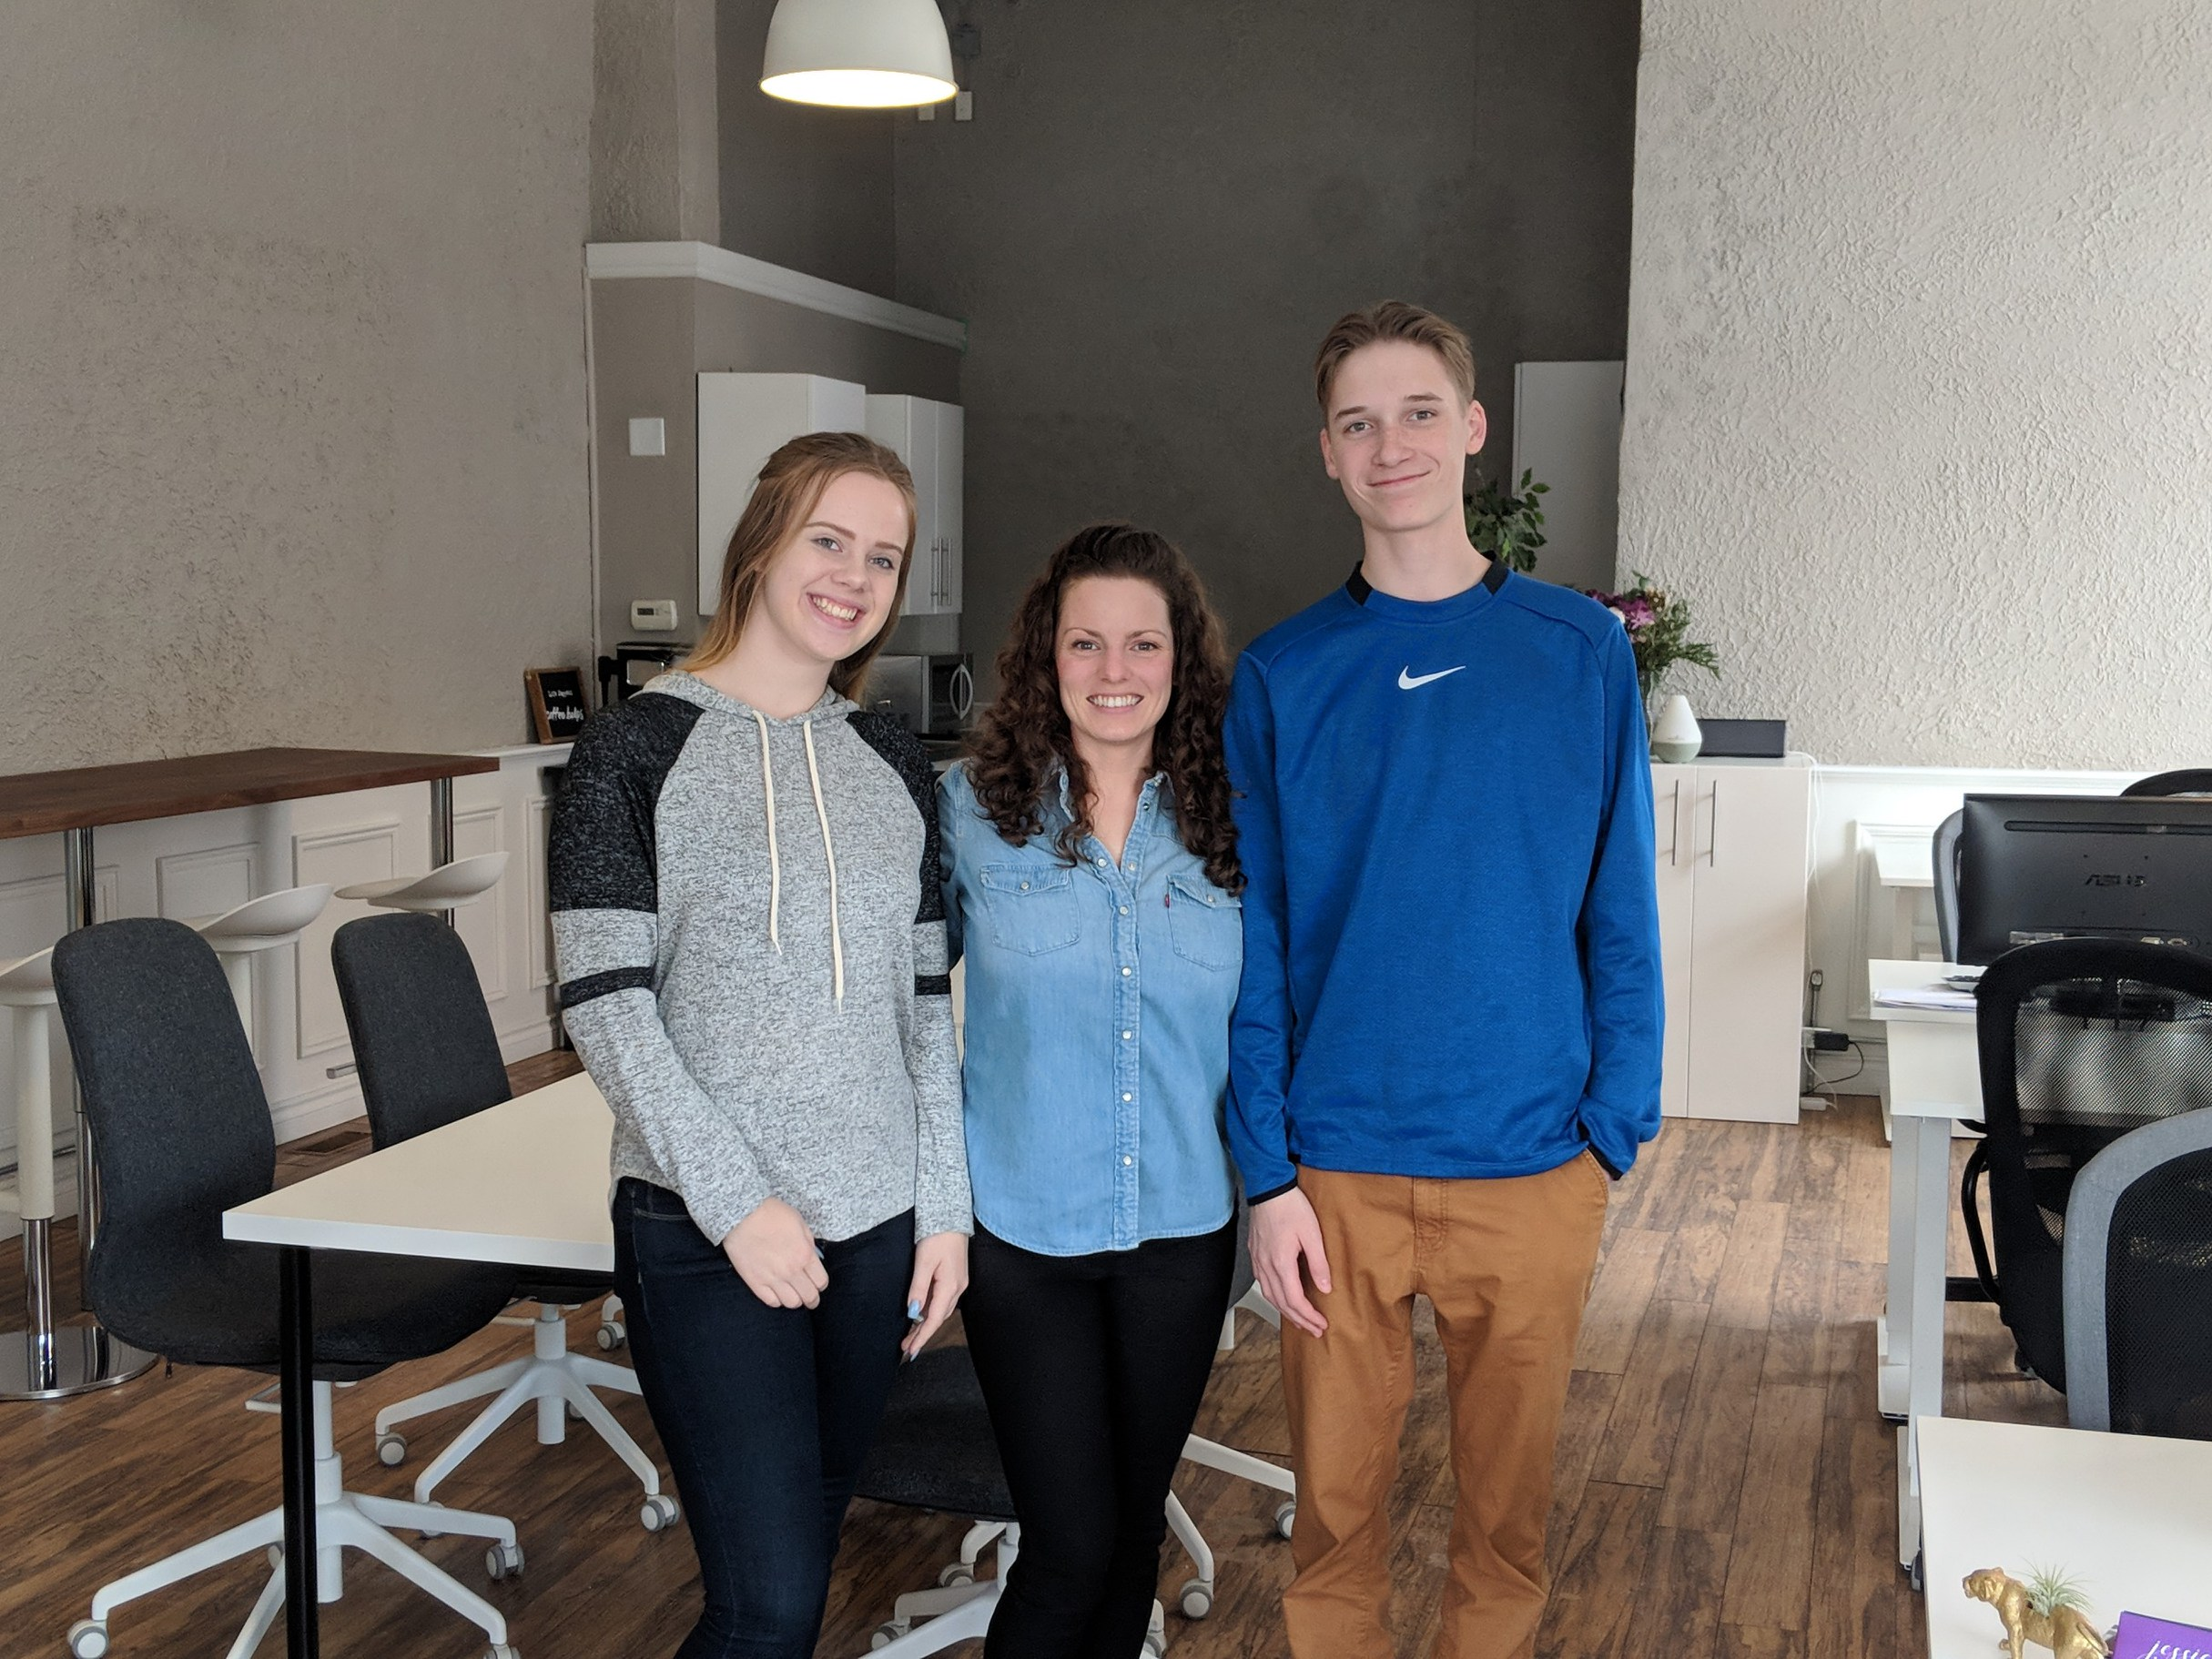 Some good news on Norfolk Street South in downtown Simcoe: first, the charitable organization Indwell has purchased the Norfolk Inn site, and plans to redevelop the property into affordable accommodation units; second, Jenn and Alex stopped by recently to visit Jess Bommarito, who has just opened 'Groundswell Coworking', which provides spaces for innovators and entrepreneurs to work together.